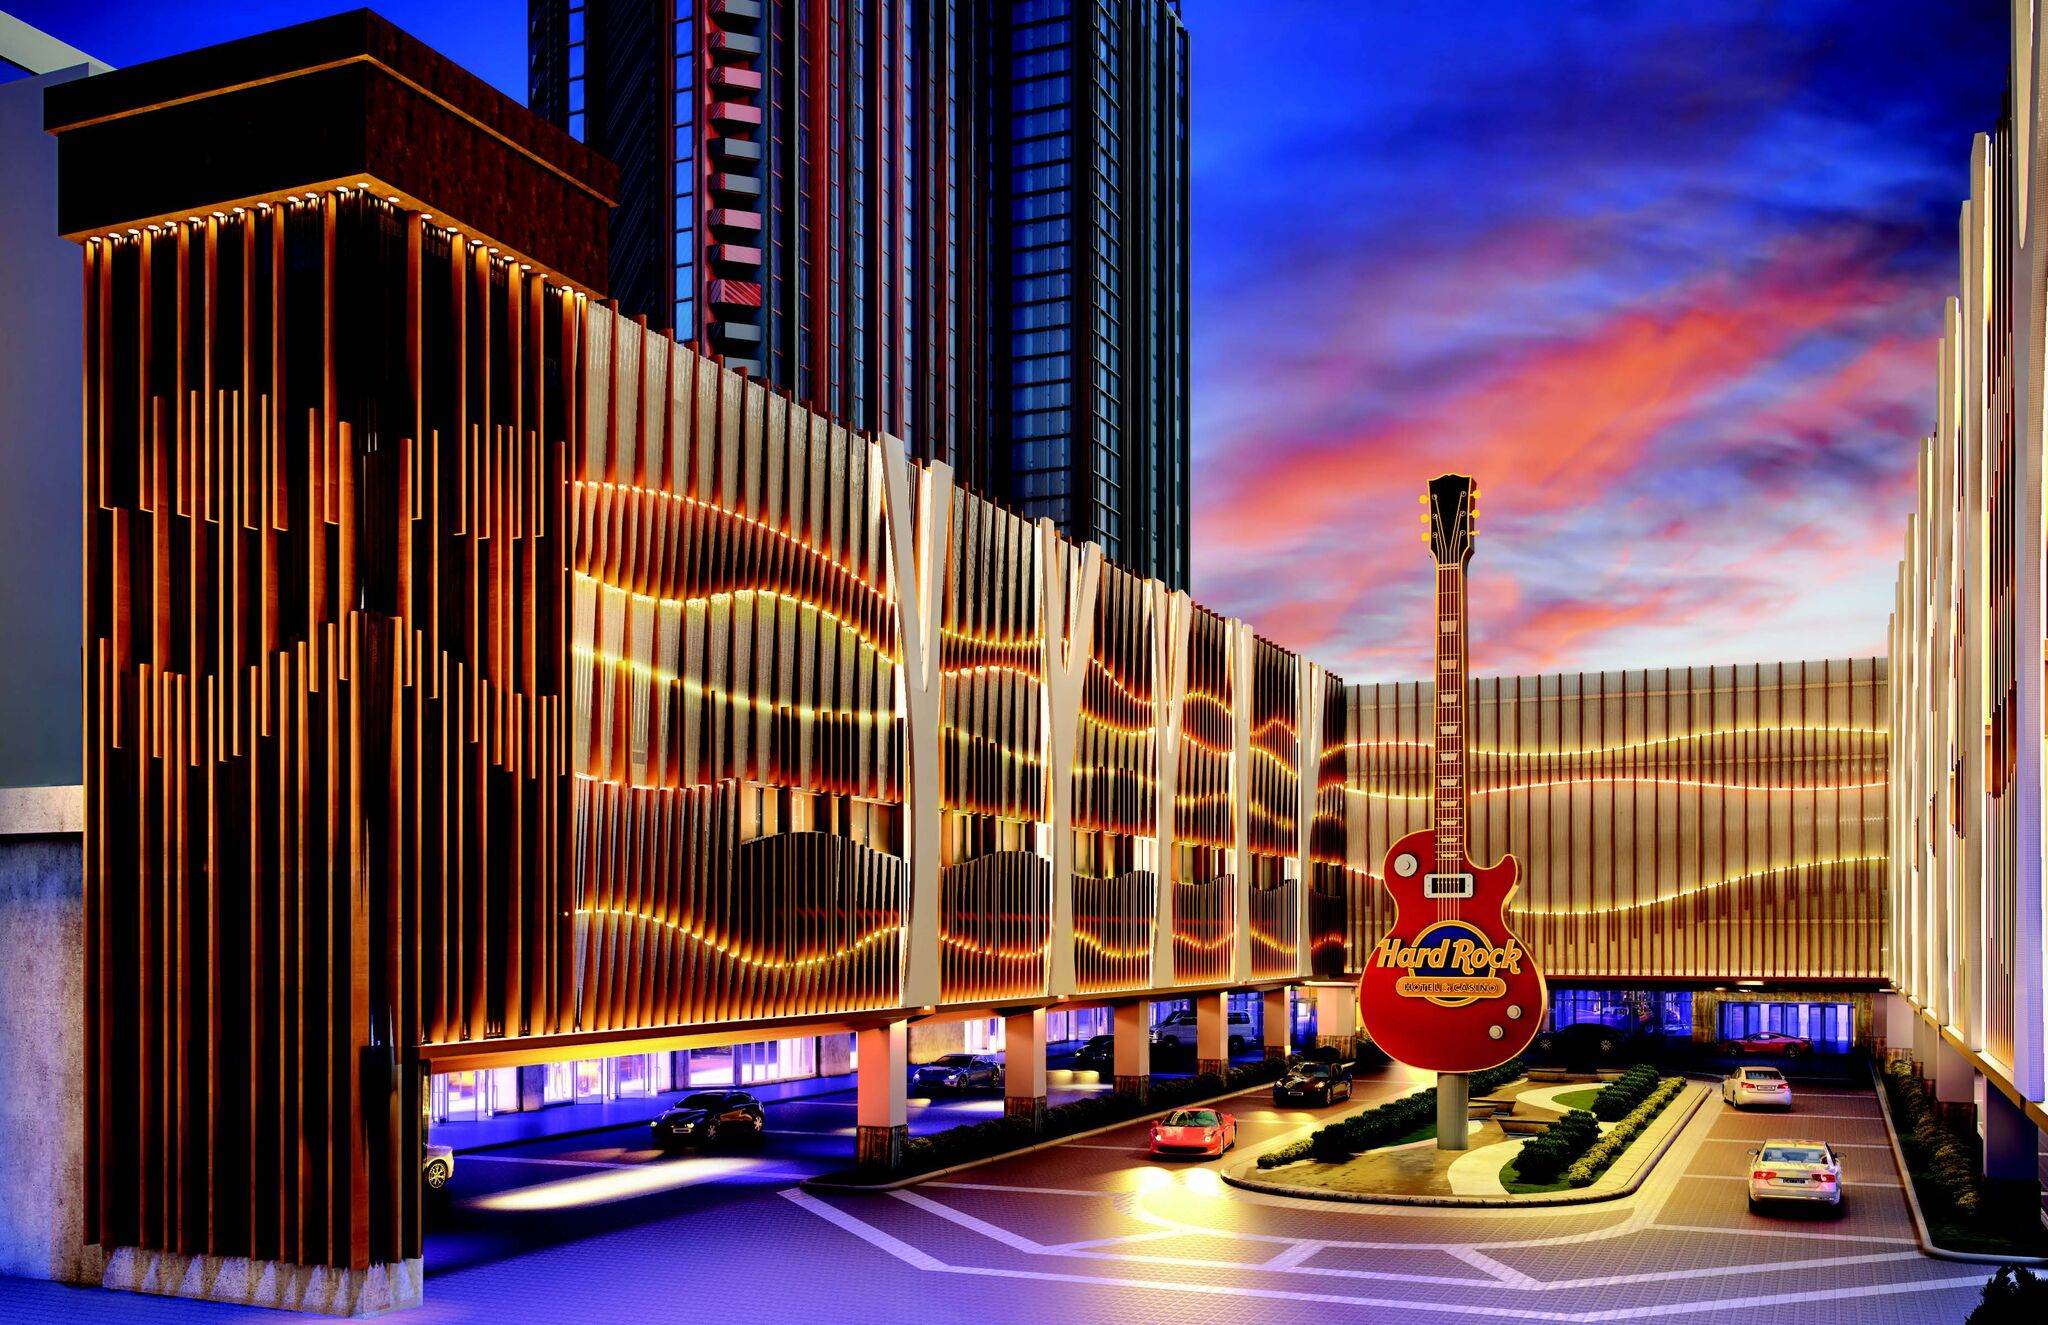 Hard Rock Hotel Atlantic City